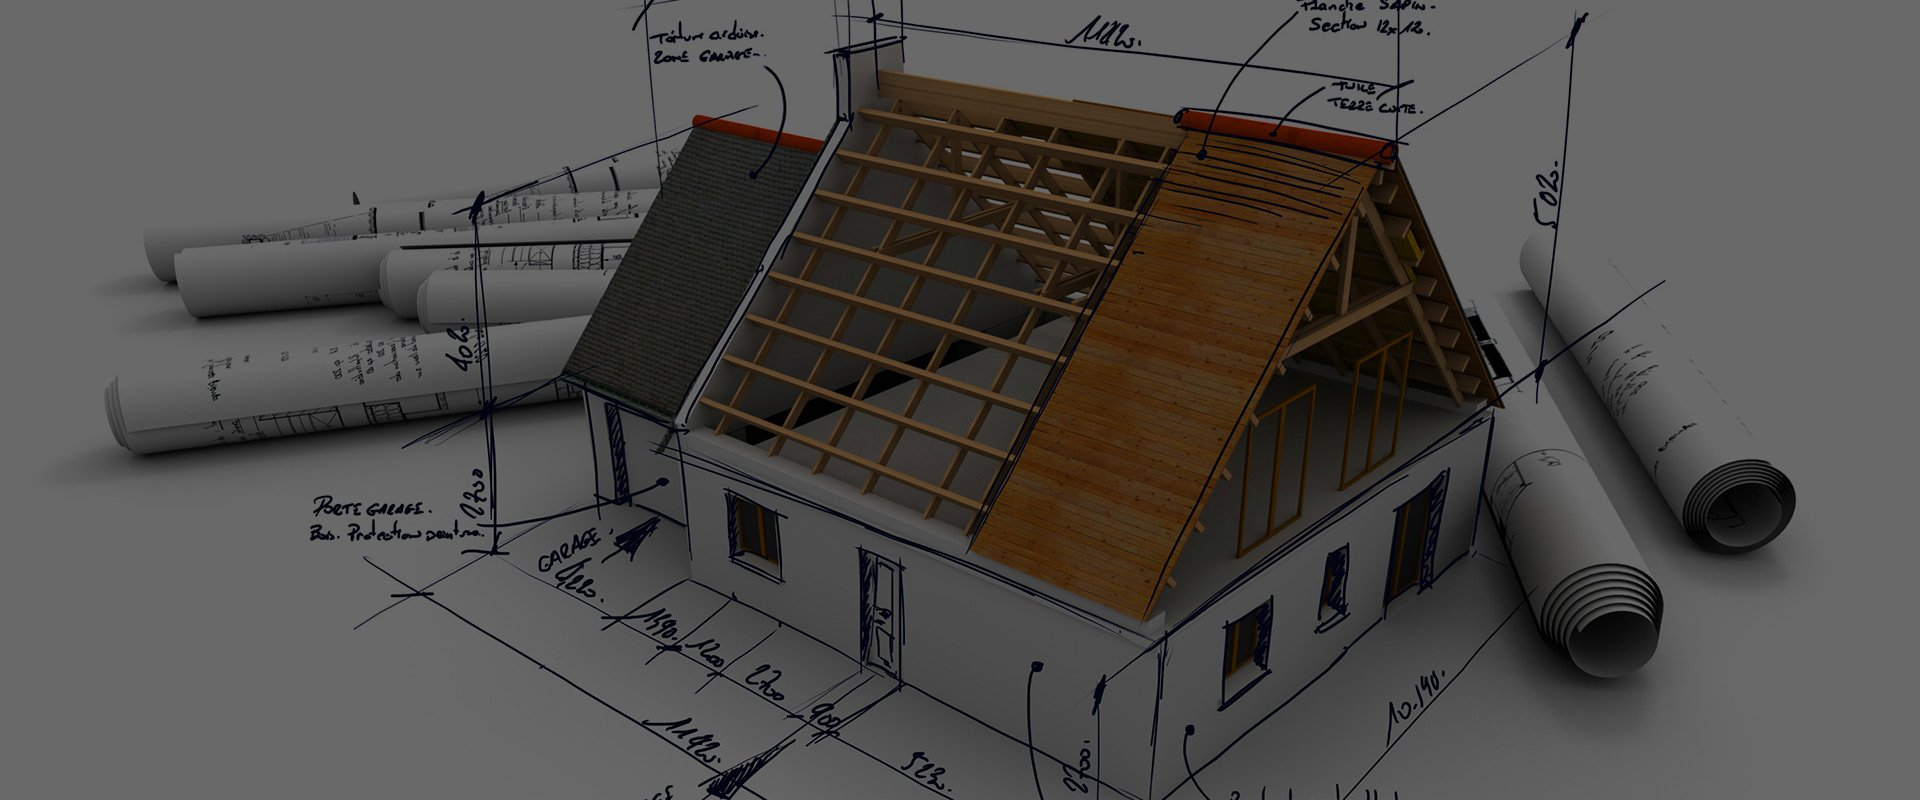 Roofing company plans & blueprints